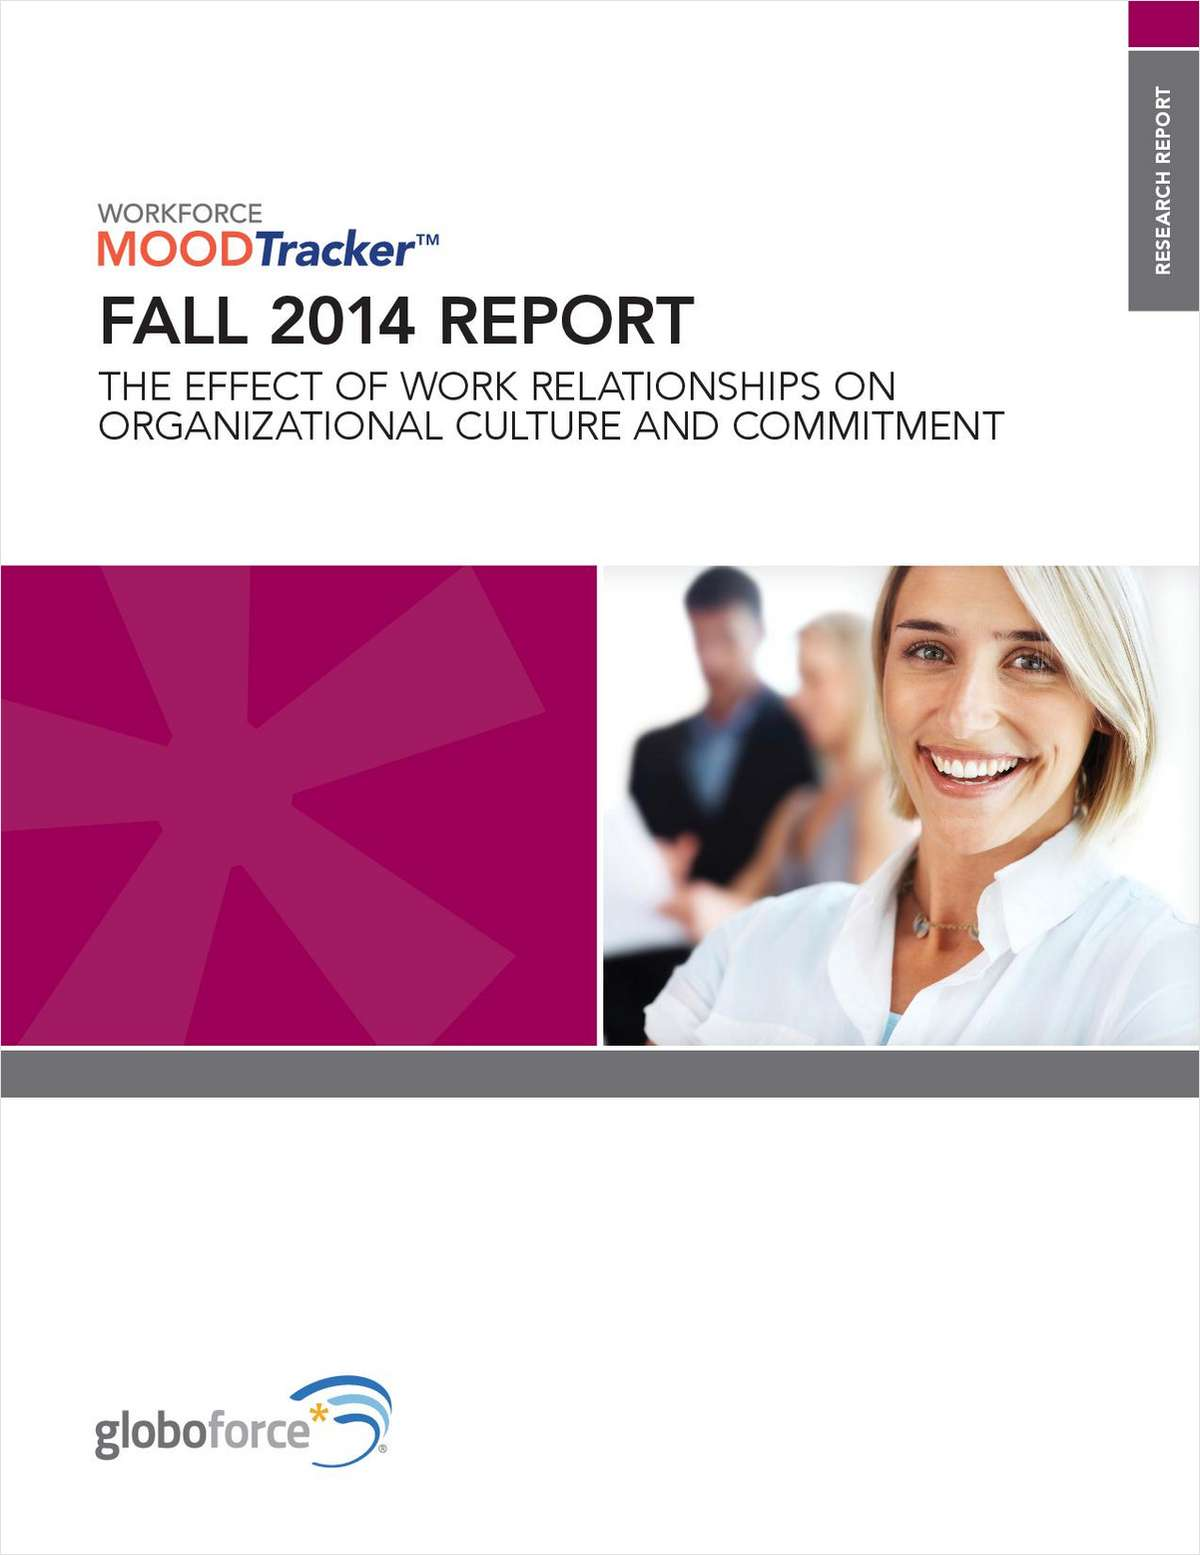 Workforce Mood Tracker Report: The Effect of Work Relationships on Organizational Culture and Commitment